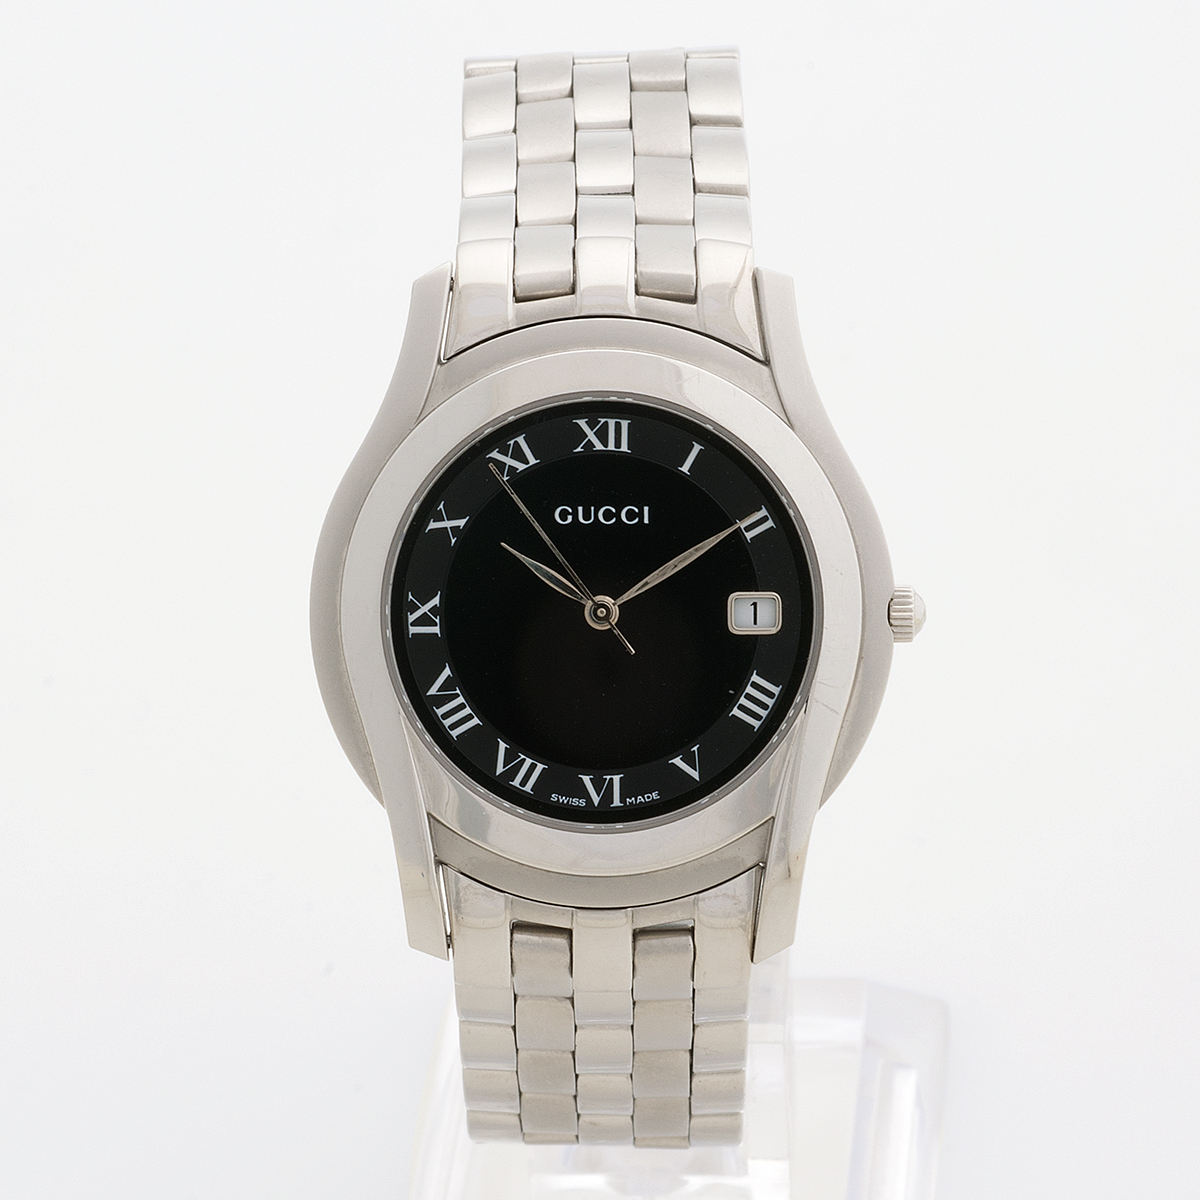 c850271ab4e Preowned Gucci 5500m Watch